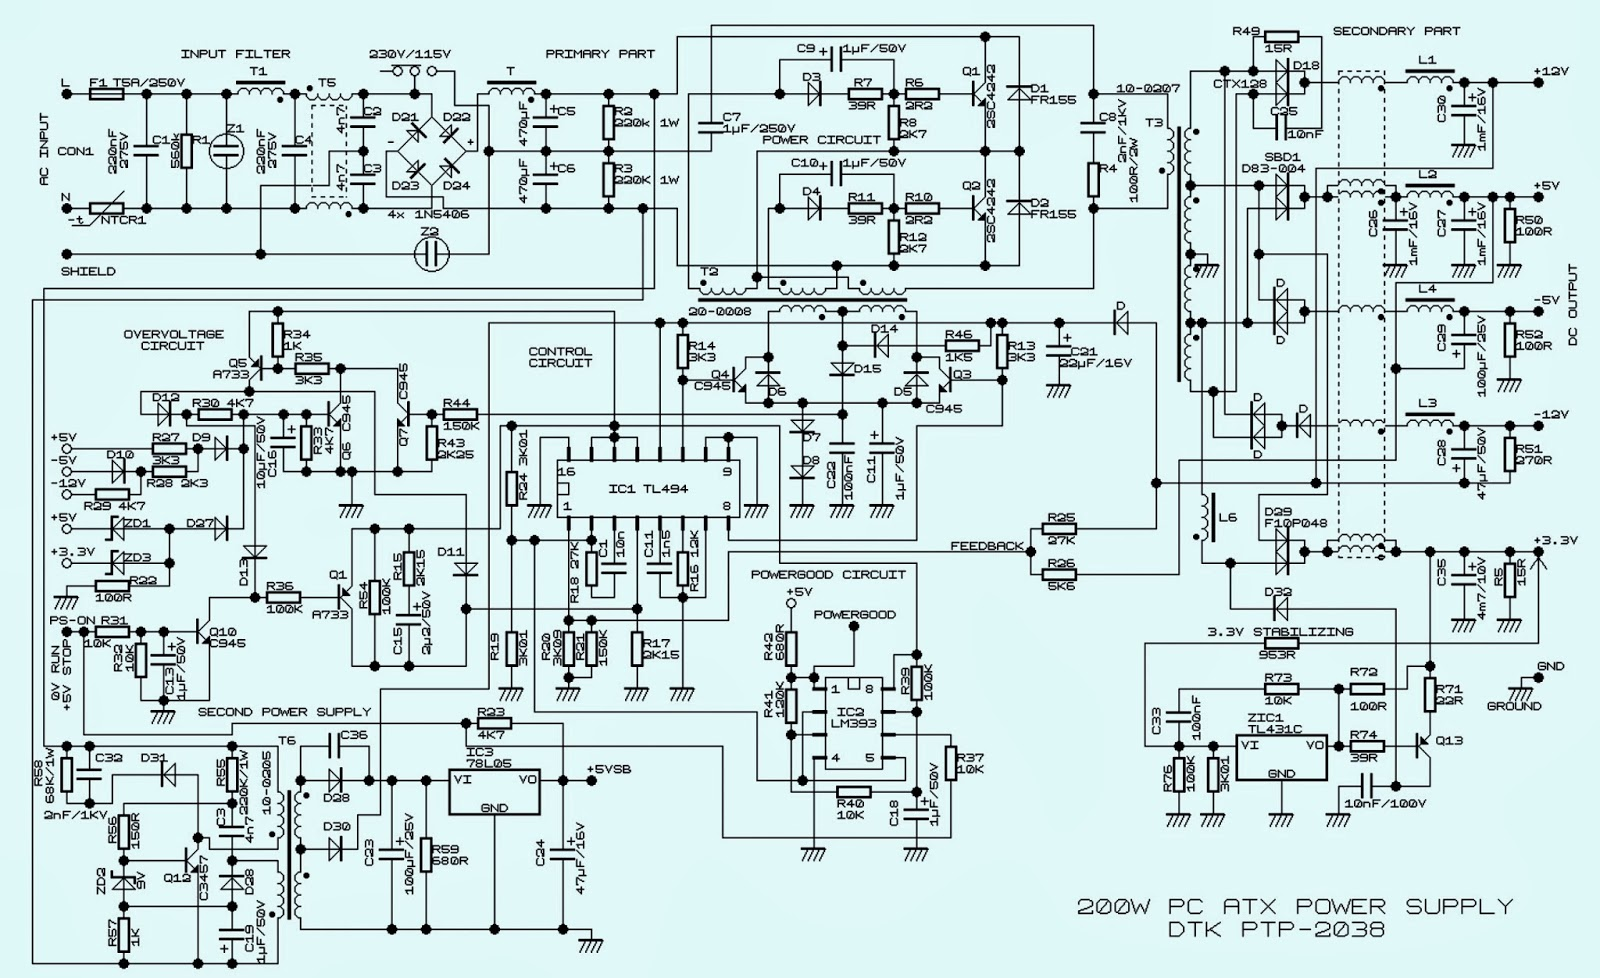 hight resolution of computer logic diagram wiring diagrams wnicomputer logic diagram wiring diagram computer logic diagram